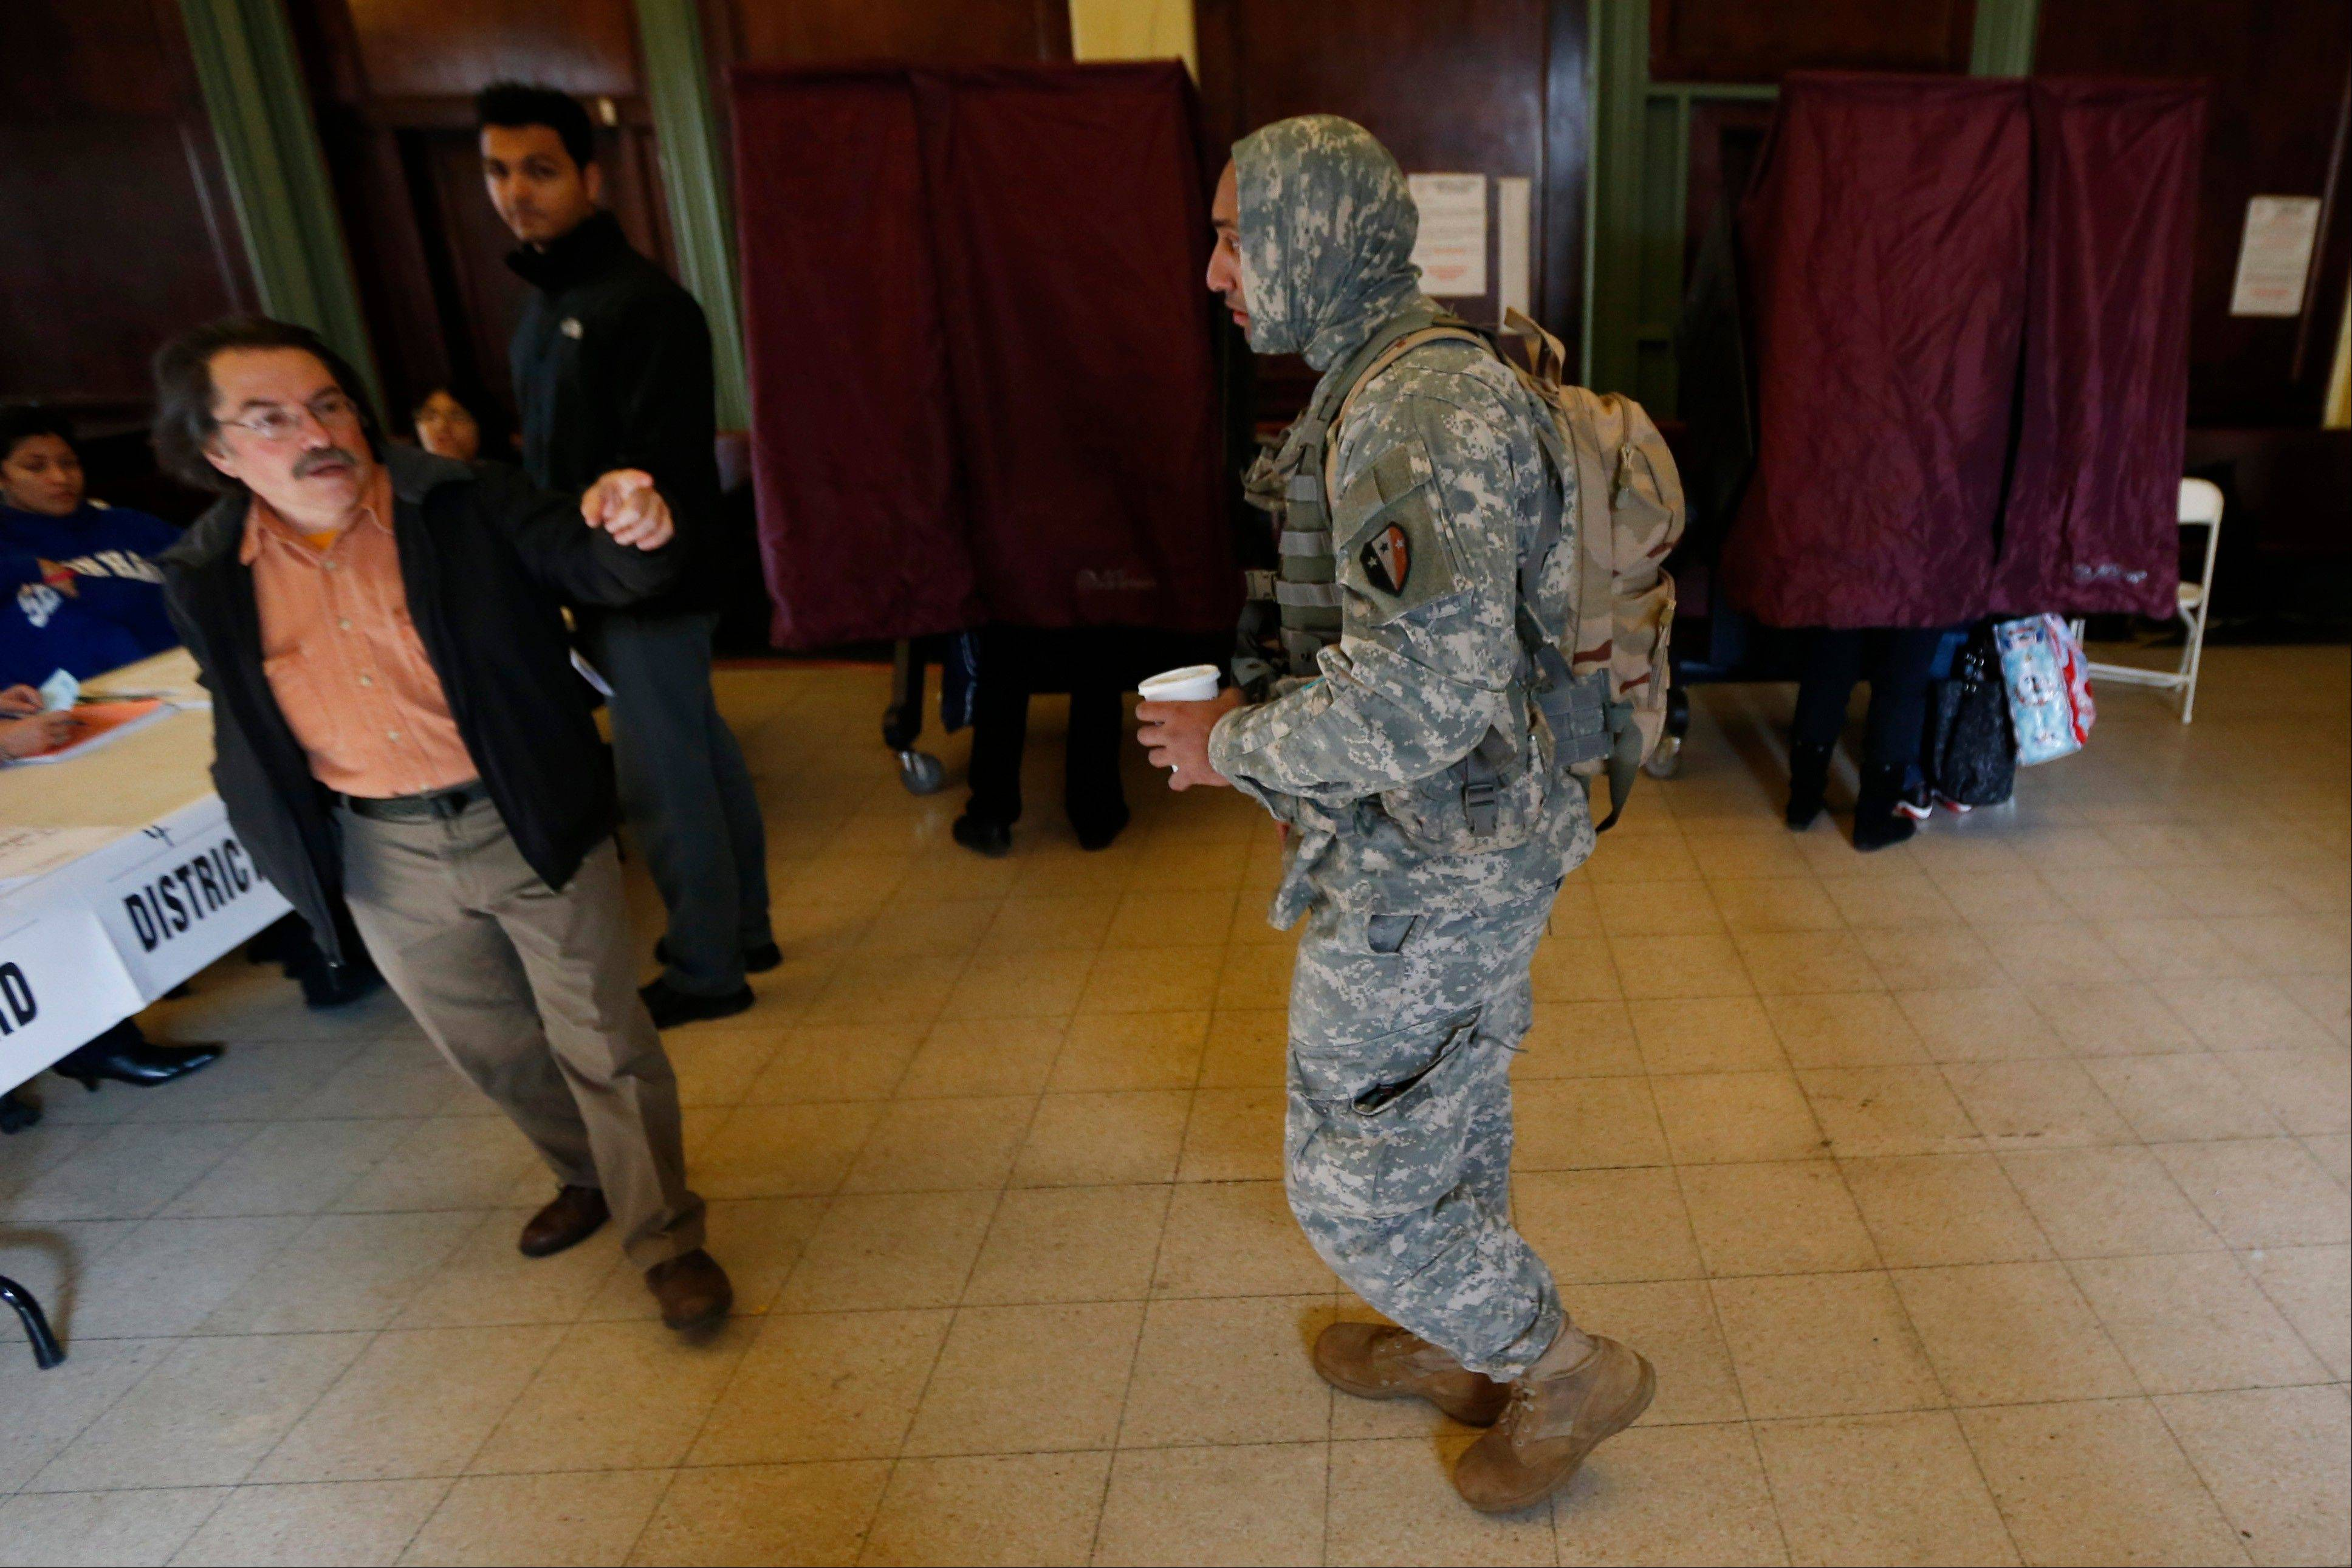 Polling place worker Ira Landgarten, left, directs New Jersey National Guard Spc. Cullin King, right, of Hillside, N.J., as he arrives at Hoboken City Hall to fill out an affidavit to cast his vote on Election Day, Tuesday, Nov. 6, 2012, in Hoboken, N.J. The National Guard members are performing duties in the city, which was hit by severe flooding caused by Superstorm Sandy.